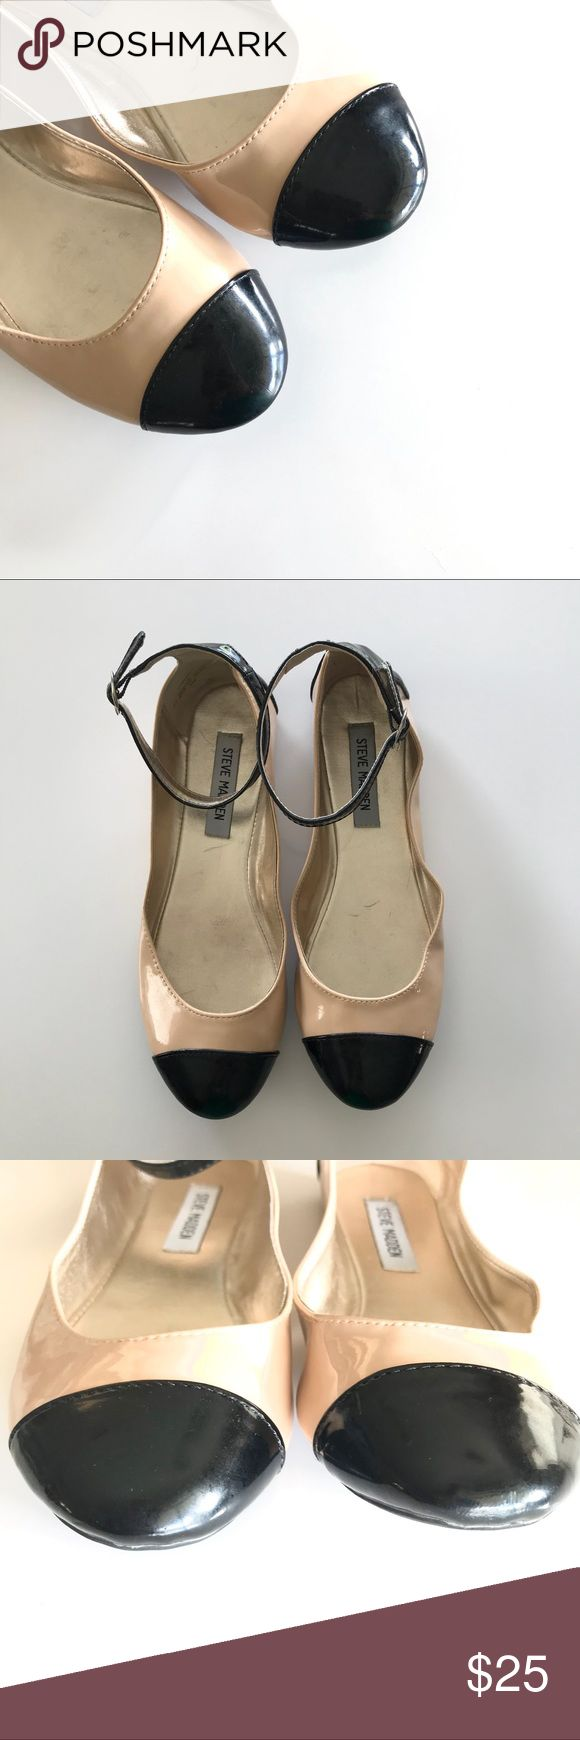 Steve Madden Gabrielle Ballet Flats Size 8 Steve Madden Gabrielle Ballet Flats Size 8, Cream and Black, Small scuff marks as shown in photos, Smoke Free Home EUC Steve Madden Shoes Flats & Loafers